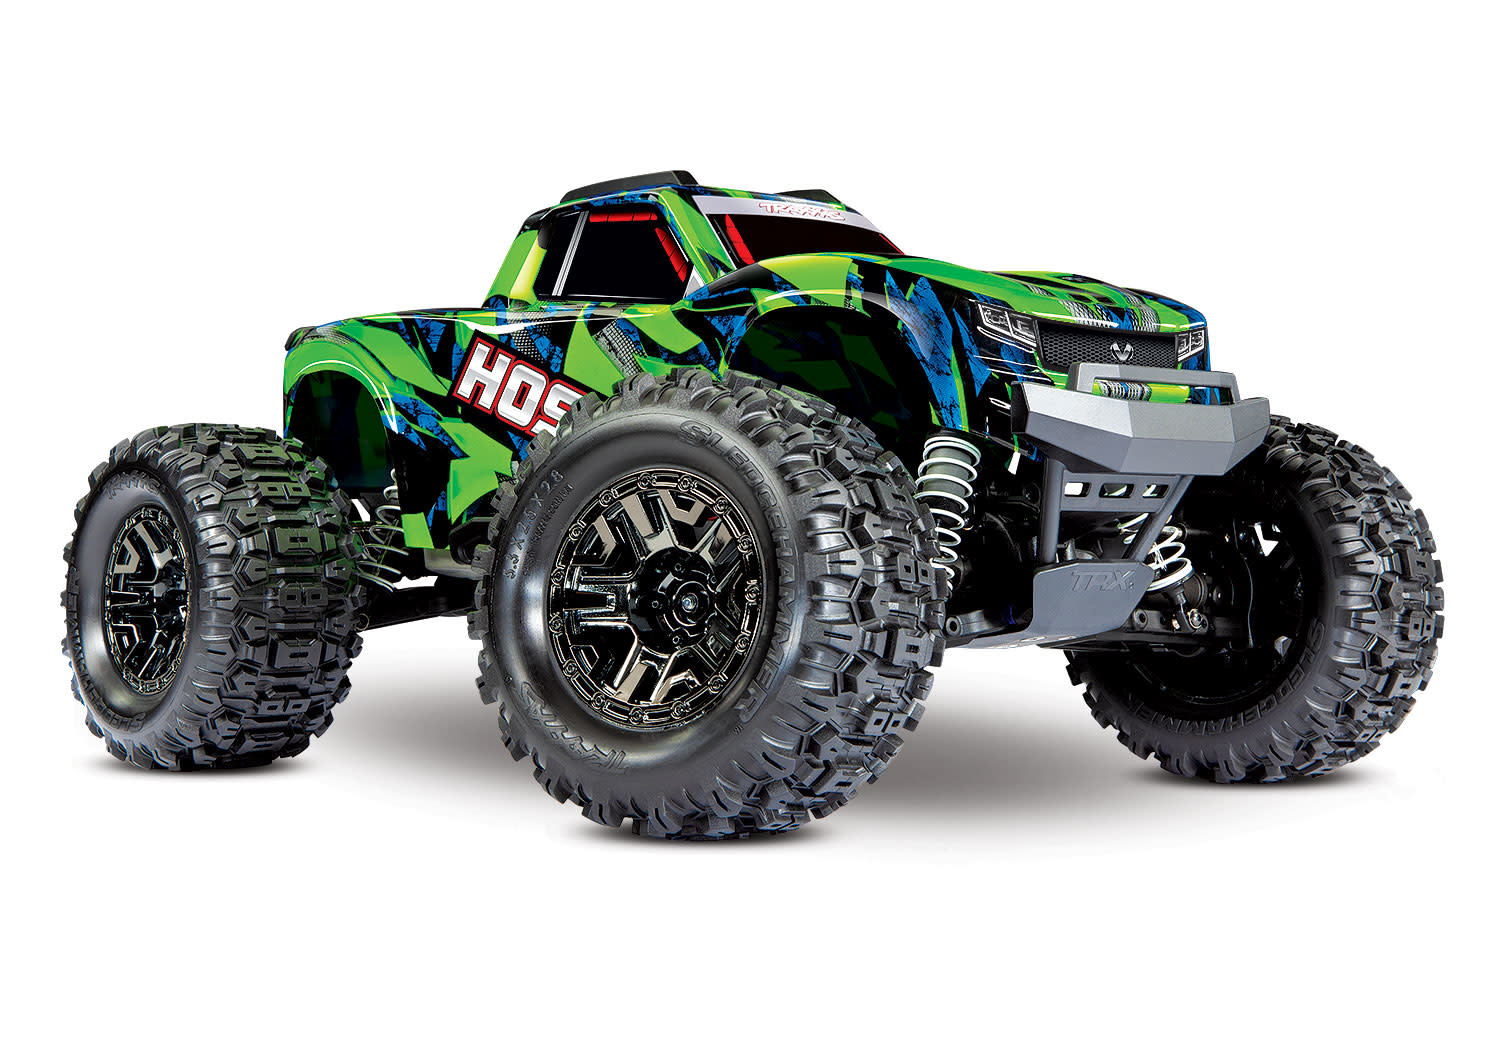 Traxxas Hoss 1/10 Scale 4WD Brushless Electric Monster Truck, VXL-3S, TQi - Green TRX90076-4G-8